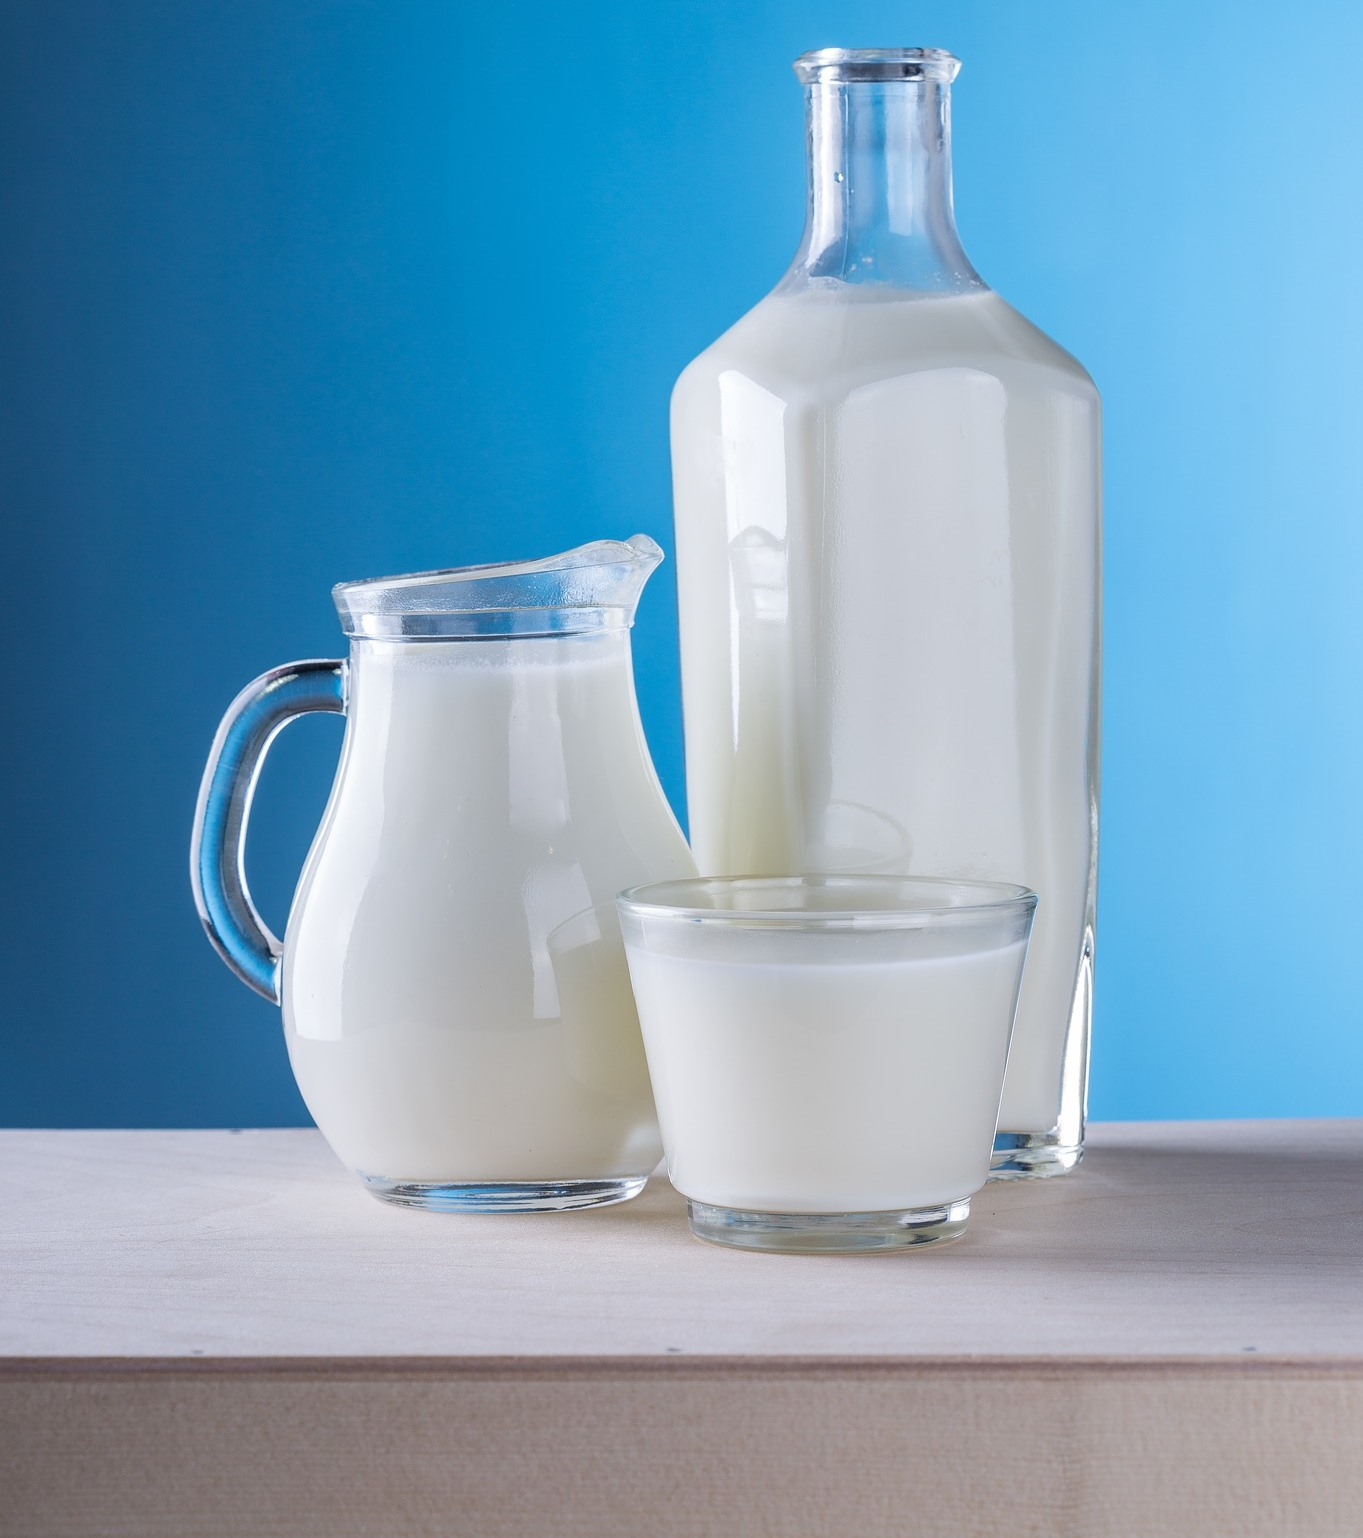 Can Too Much Milk Raise Your Calcium Score?